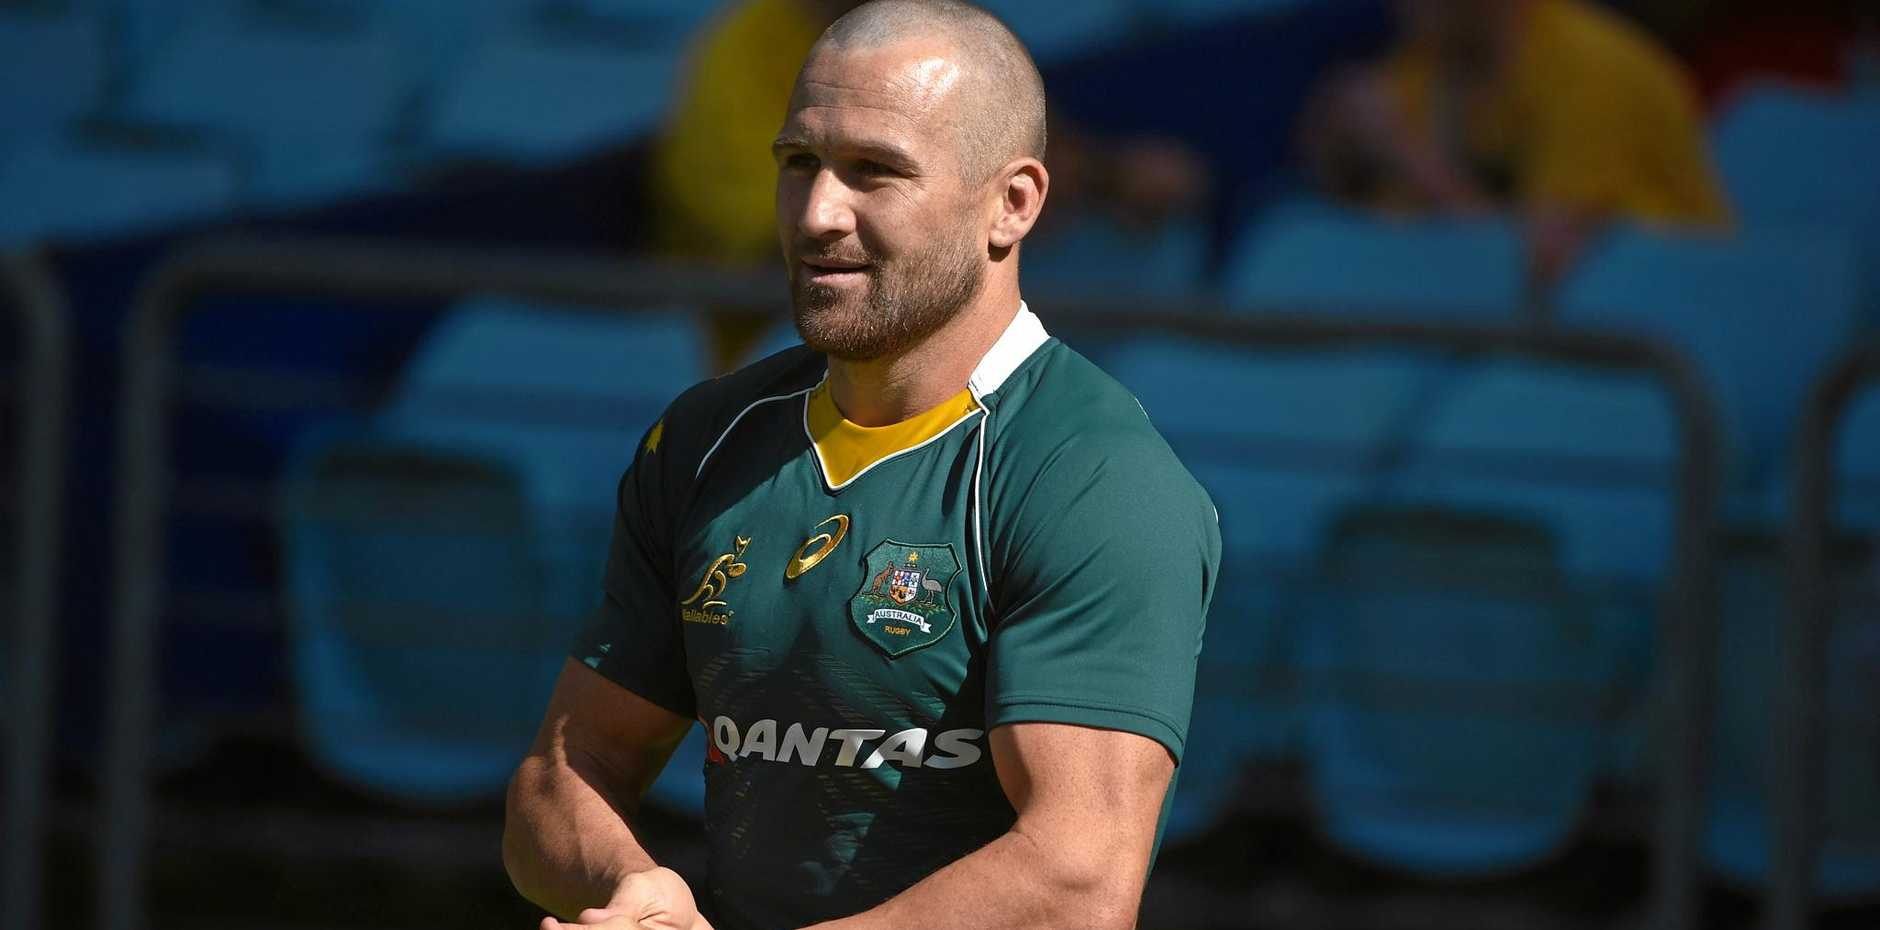 Wallabies centre Matt Giteau during a Wallabies training session.